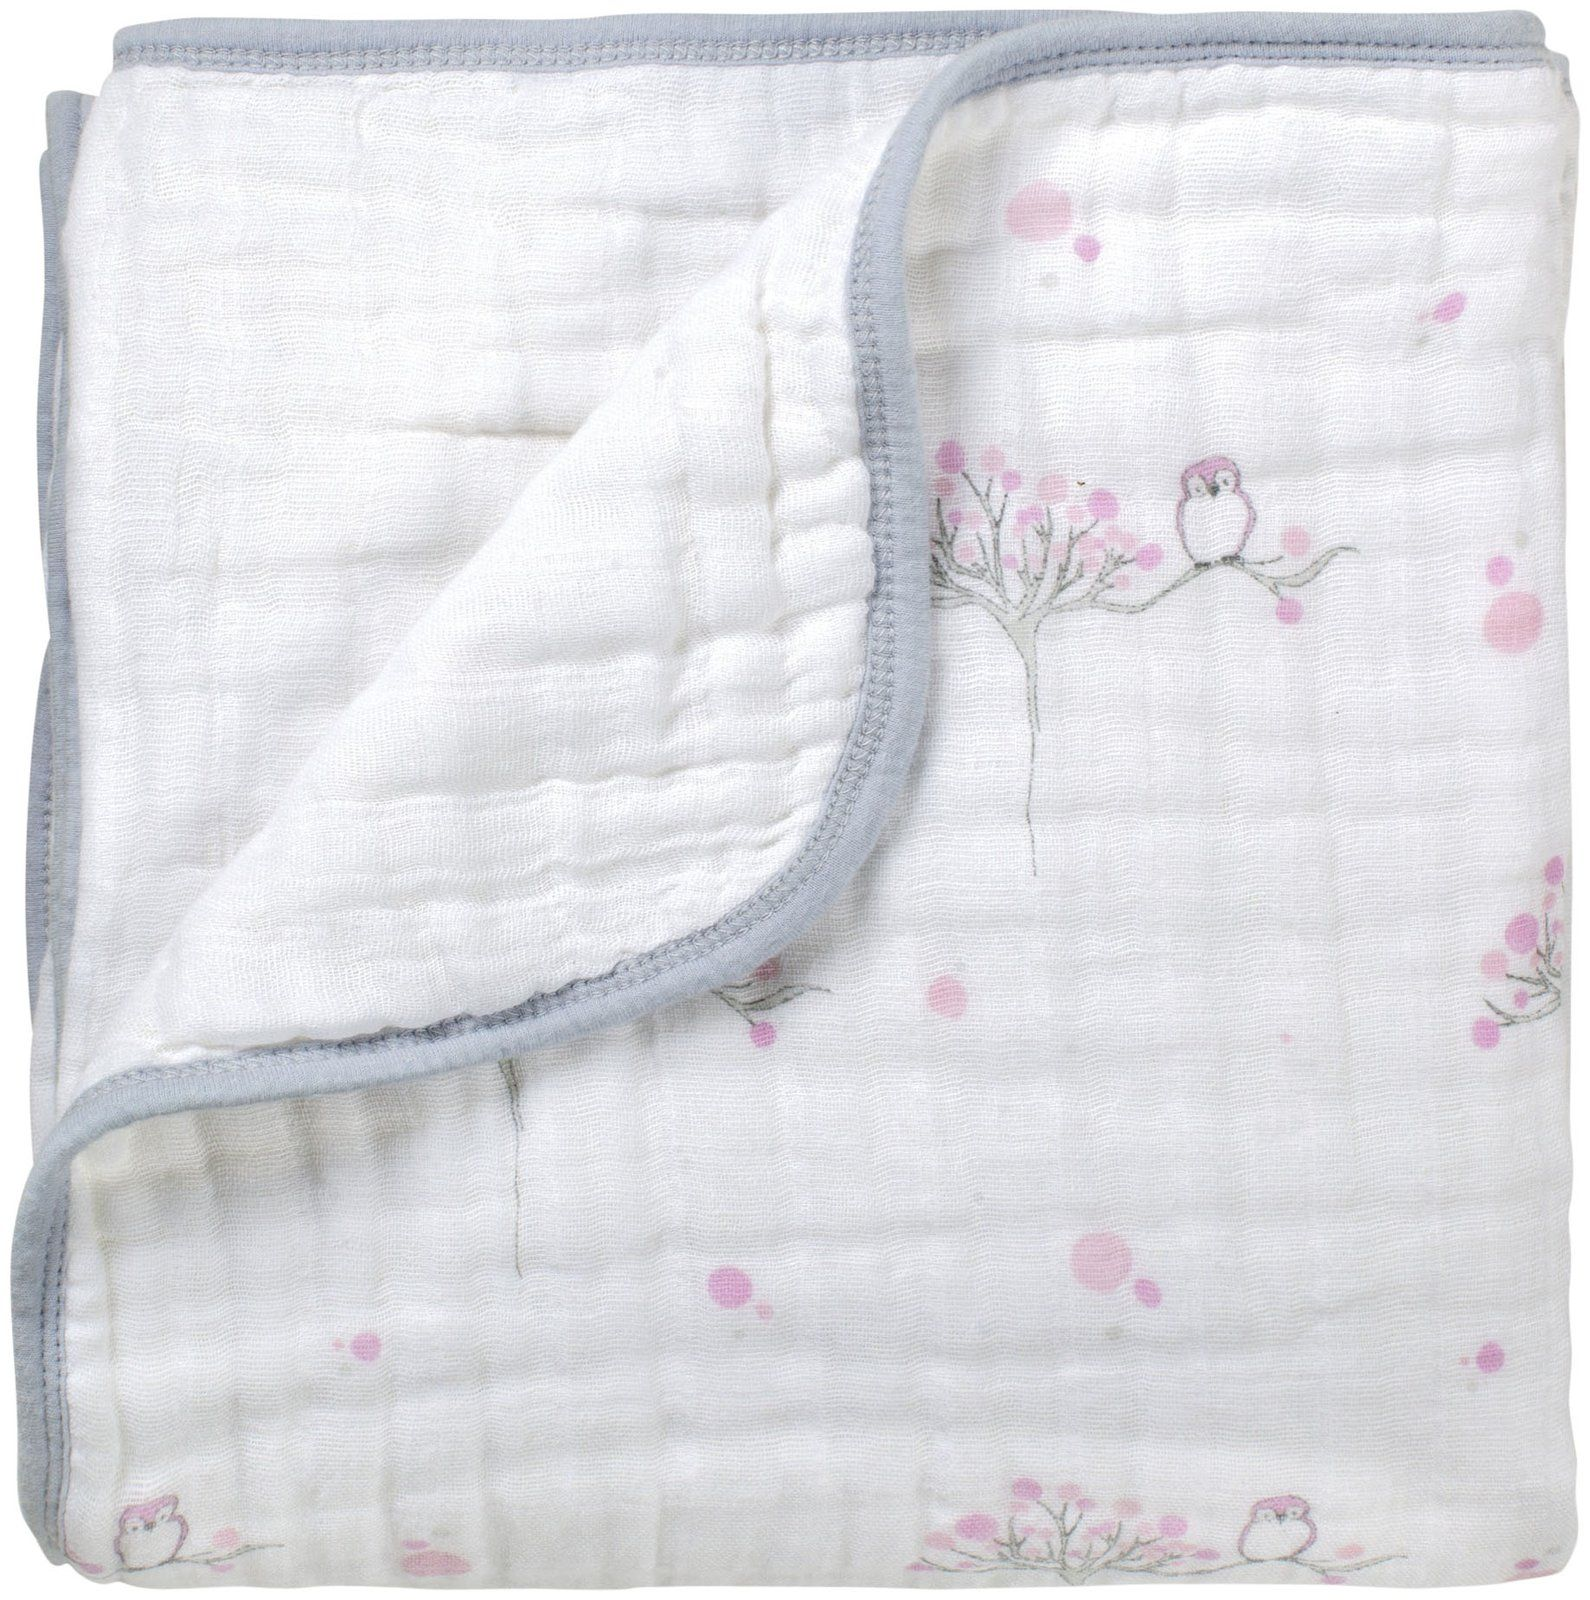 Aden And Anais Swaddle Blankets Fair Aden  Anais 100% Cotton Muslin Dream Blanket  Free Shipping  Cute Inspiration